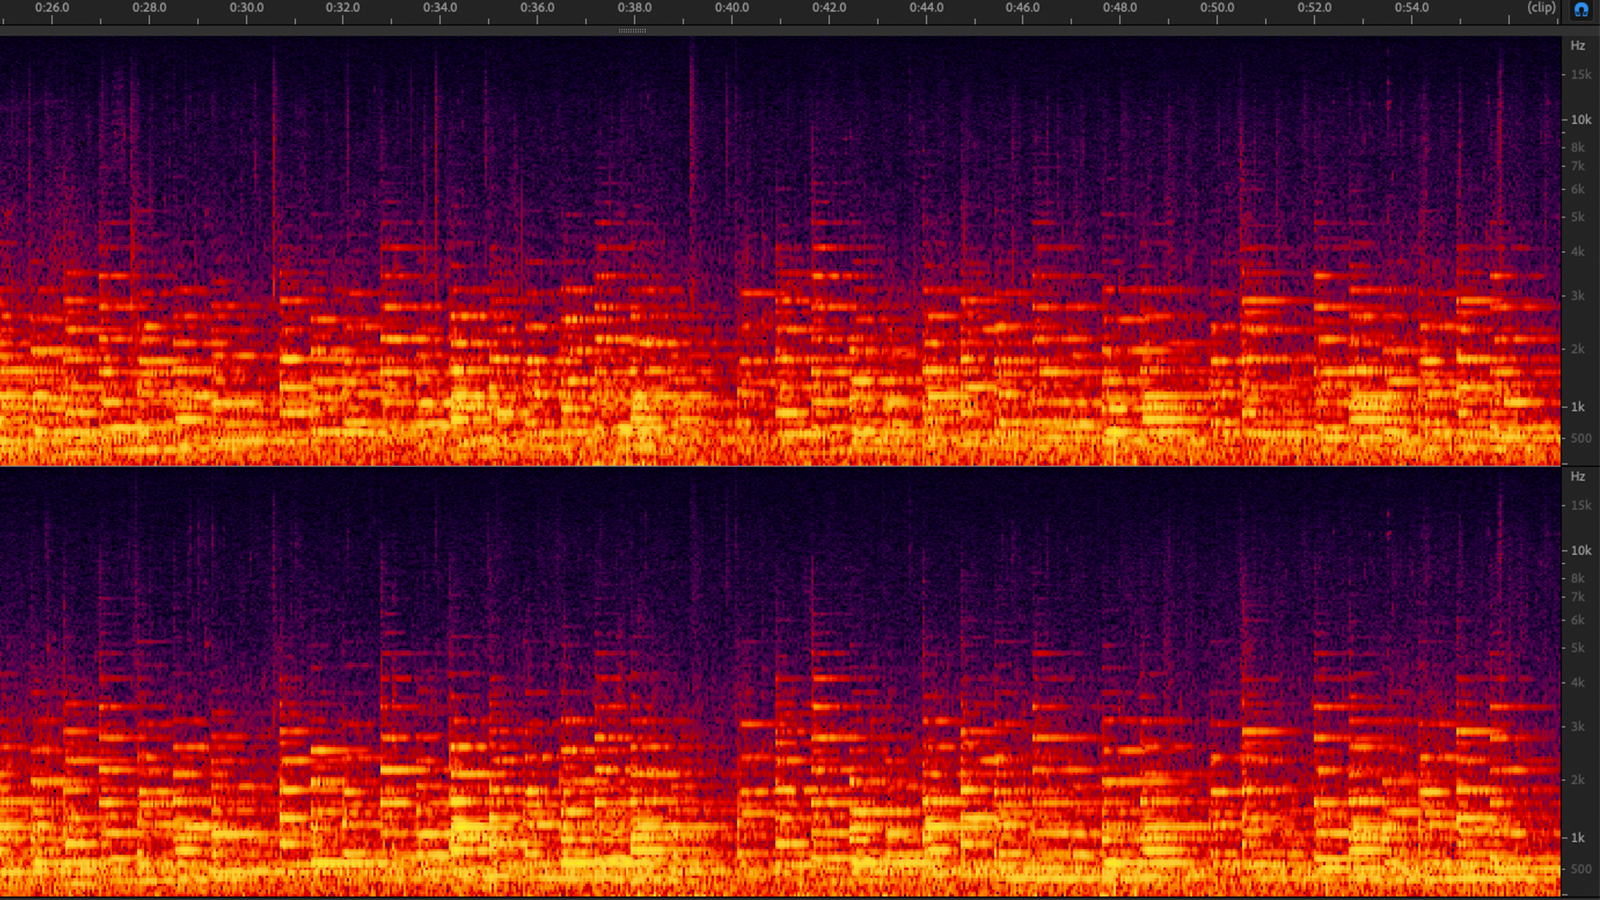 Spectral frequency analysis of St Paul's bells chiming